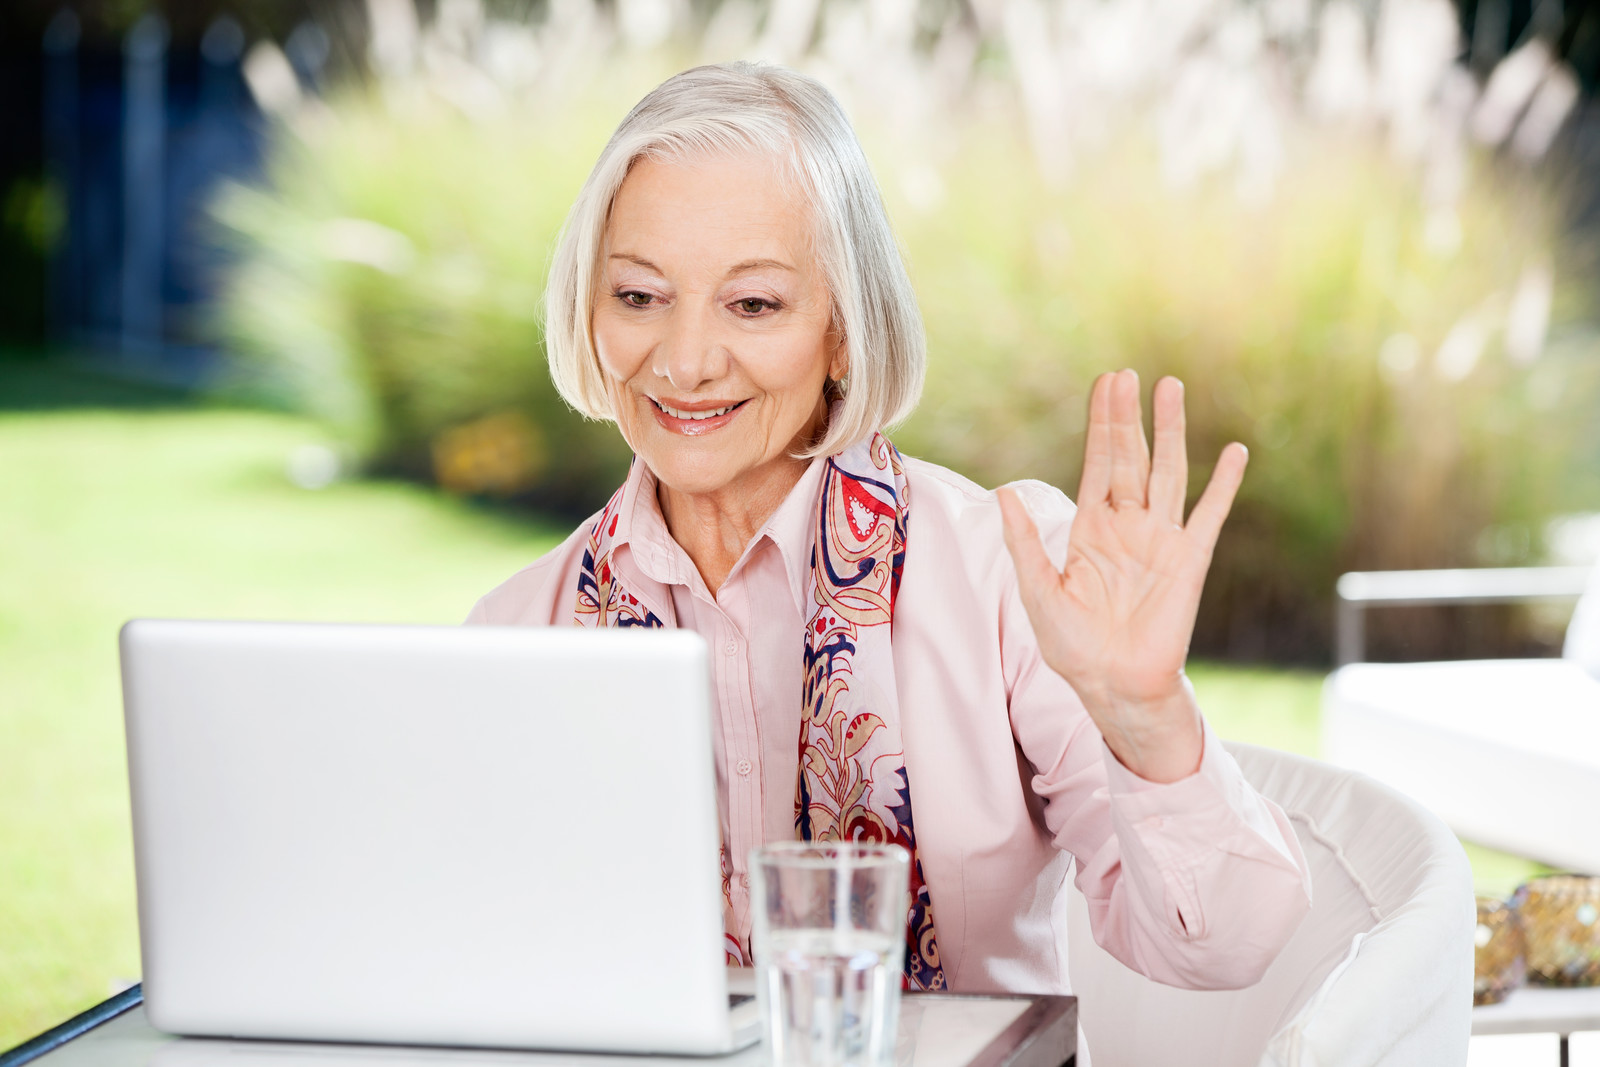 A senior woman waving to someone on the computer sitting outside on a sunny day.  A glass is sitting on the table and she's smiling.  blurred out trees in the background.